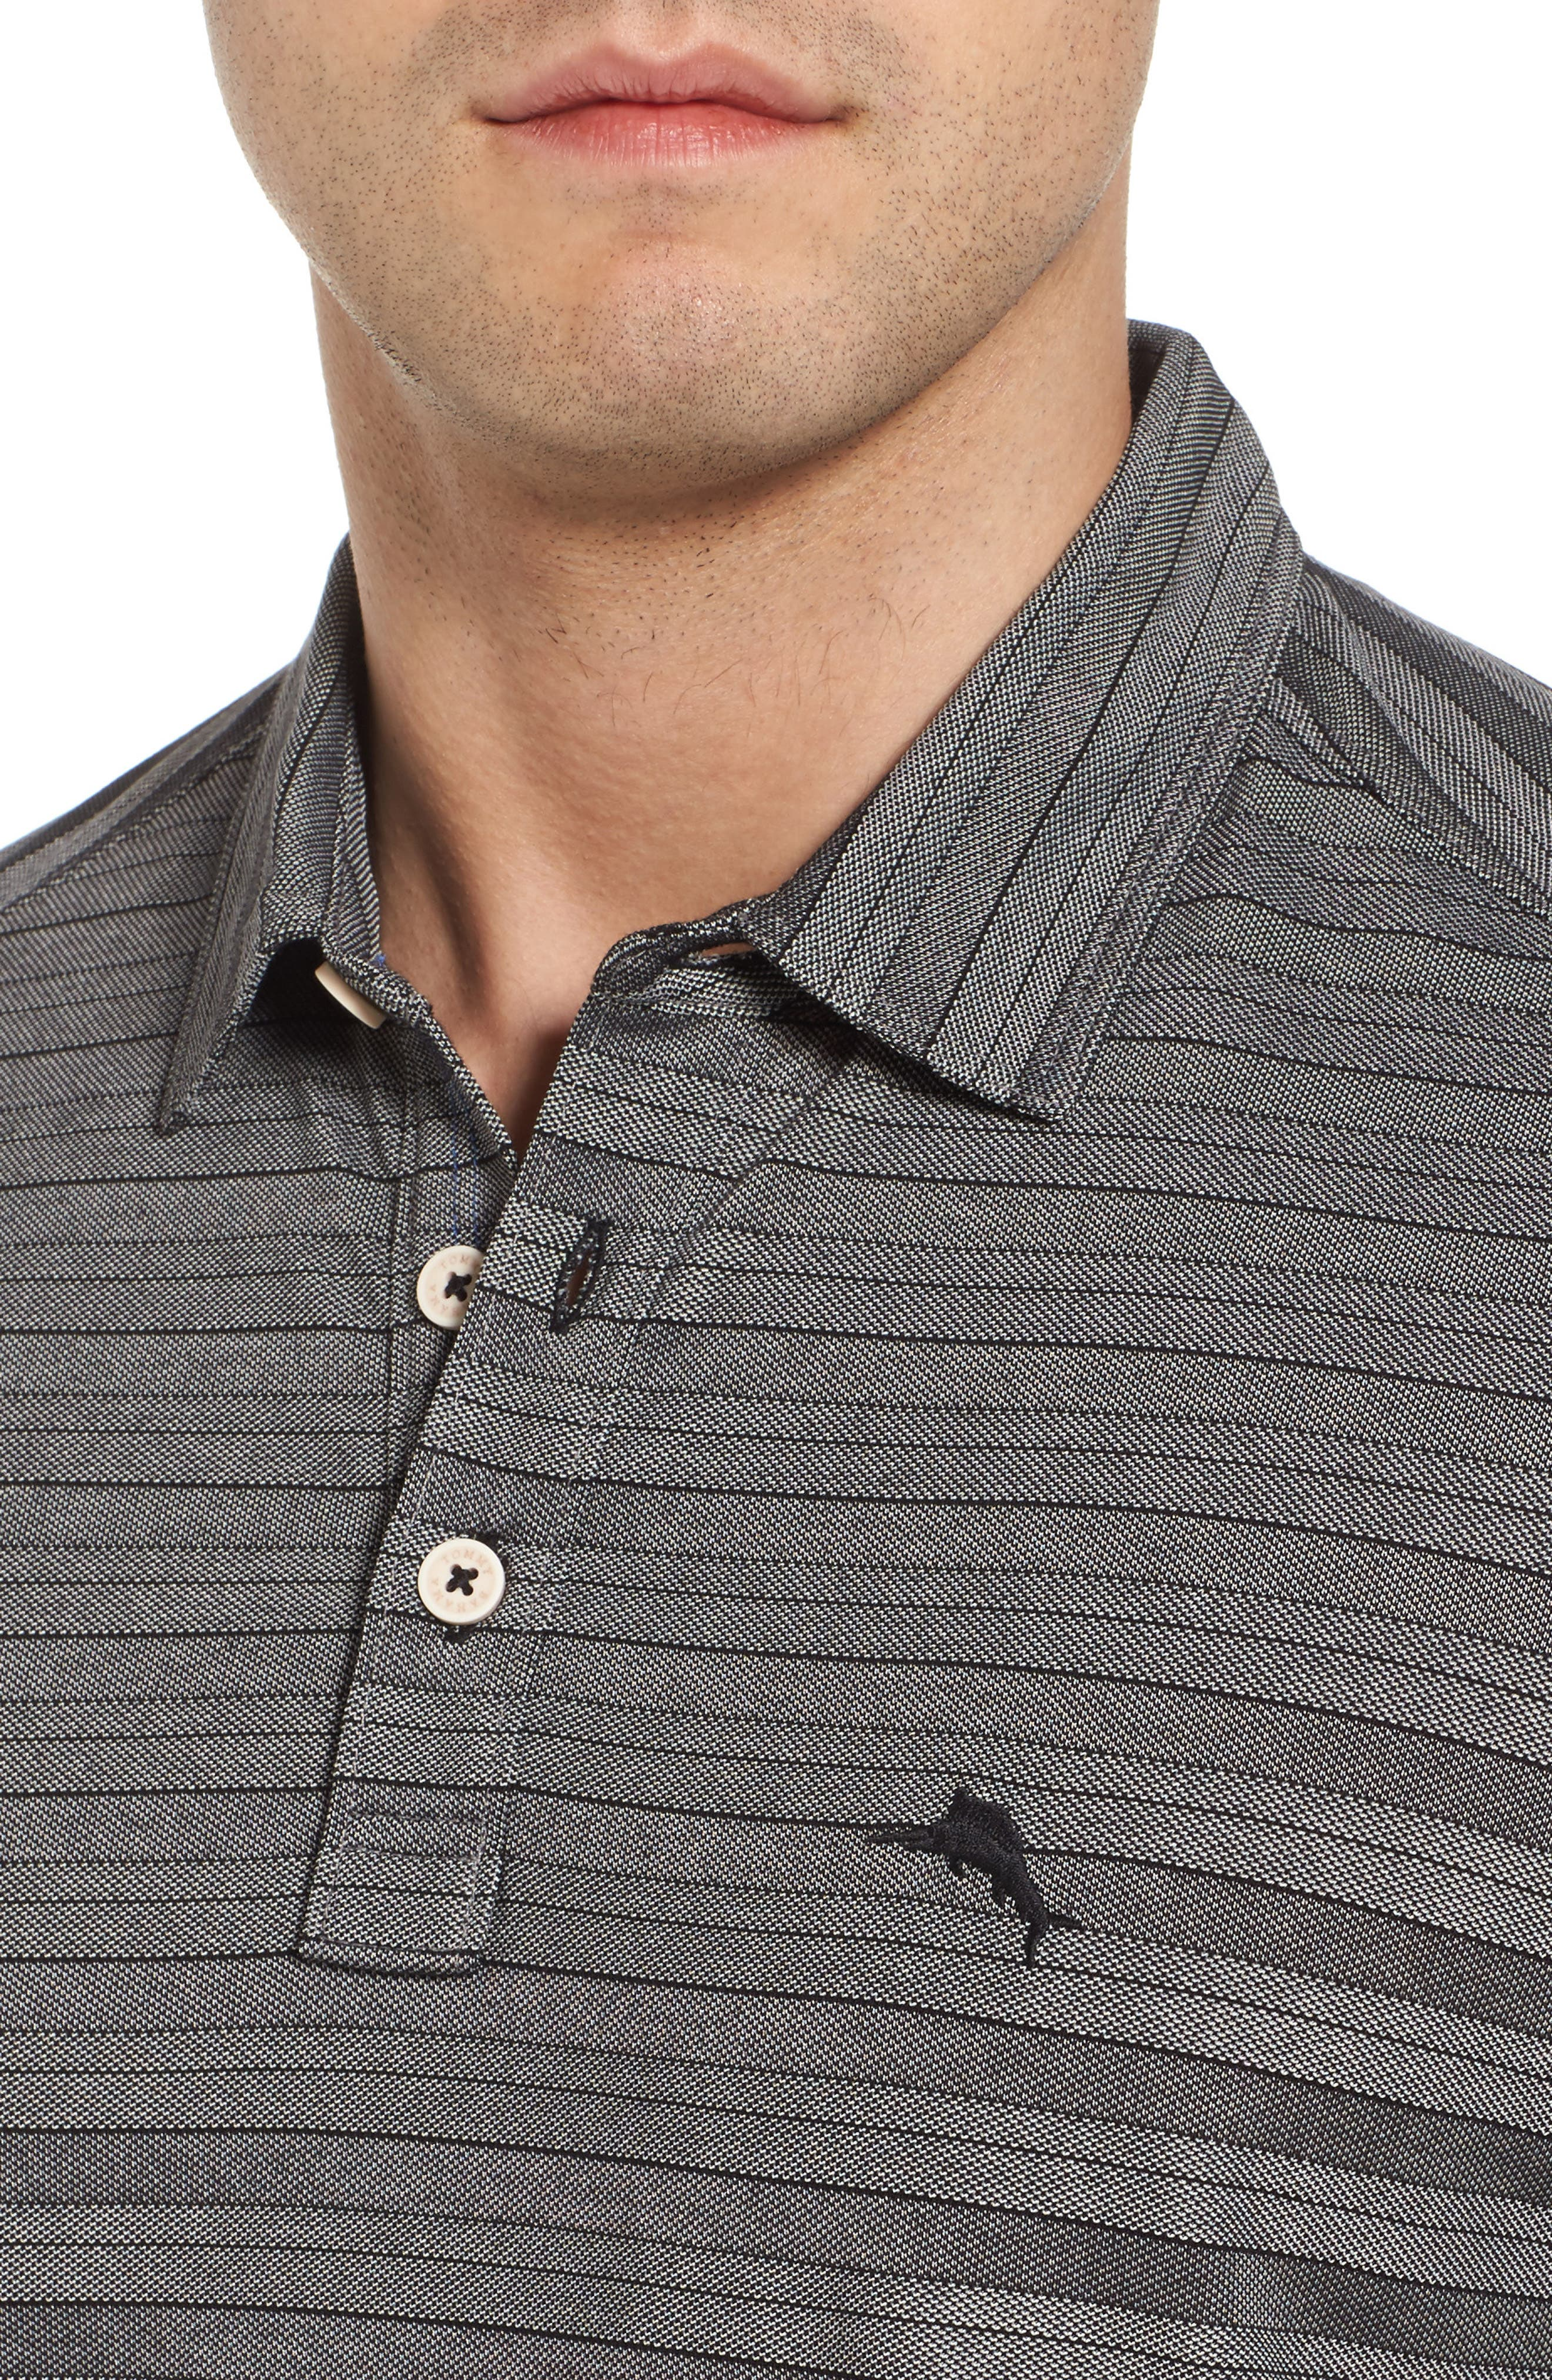 Tropicool Tides Stripe Polo,                             Alternate thumbnail 4, color,                             001